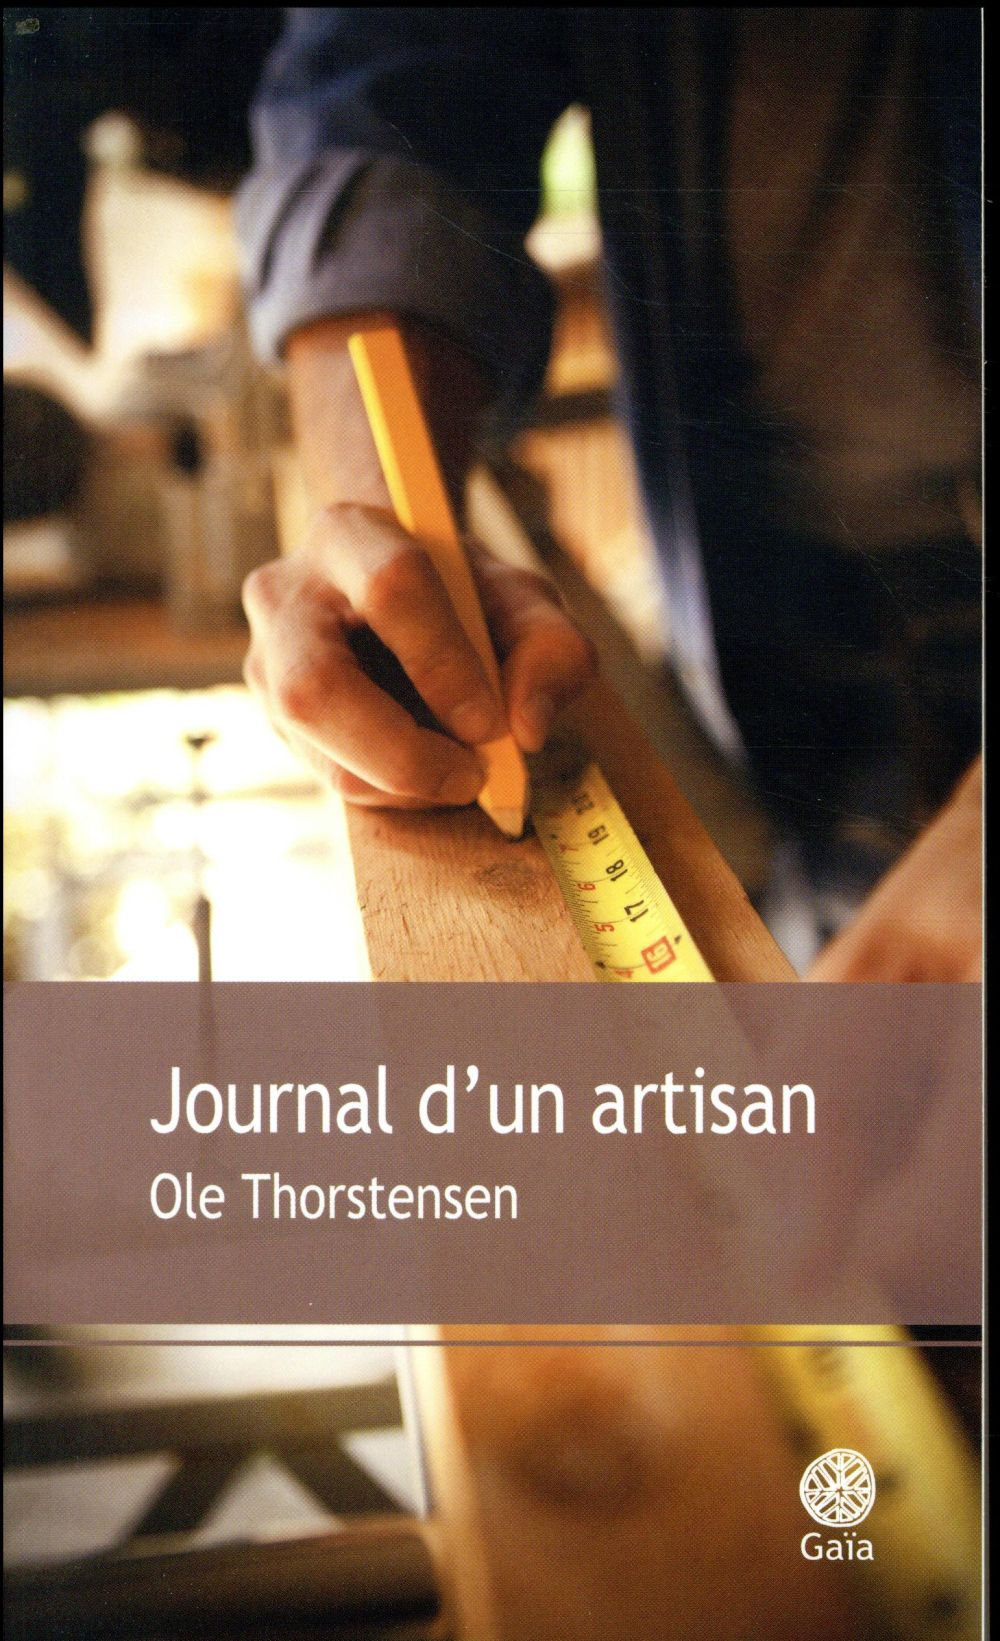 Journal D'un Artisan THORSTENSEN  OLE Gaïa